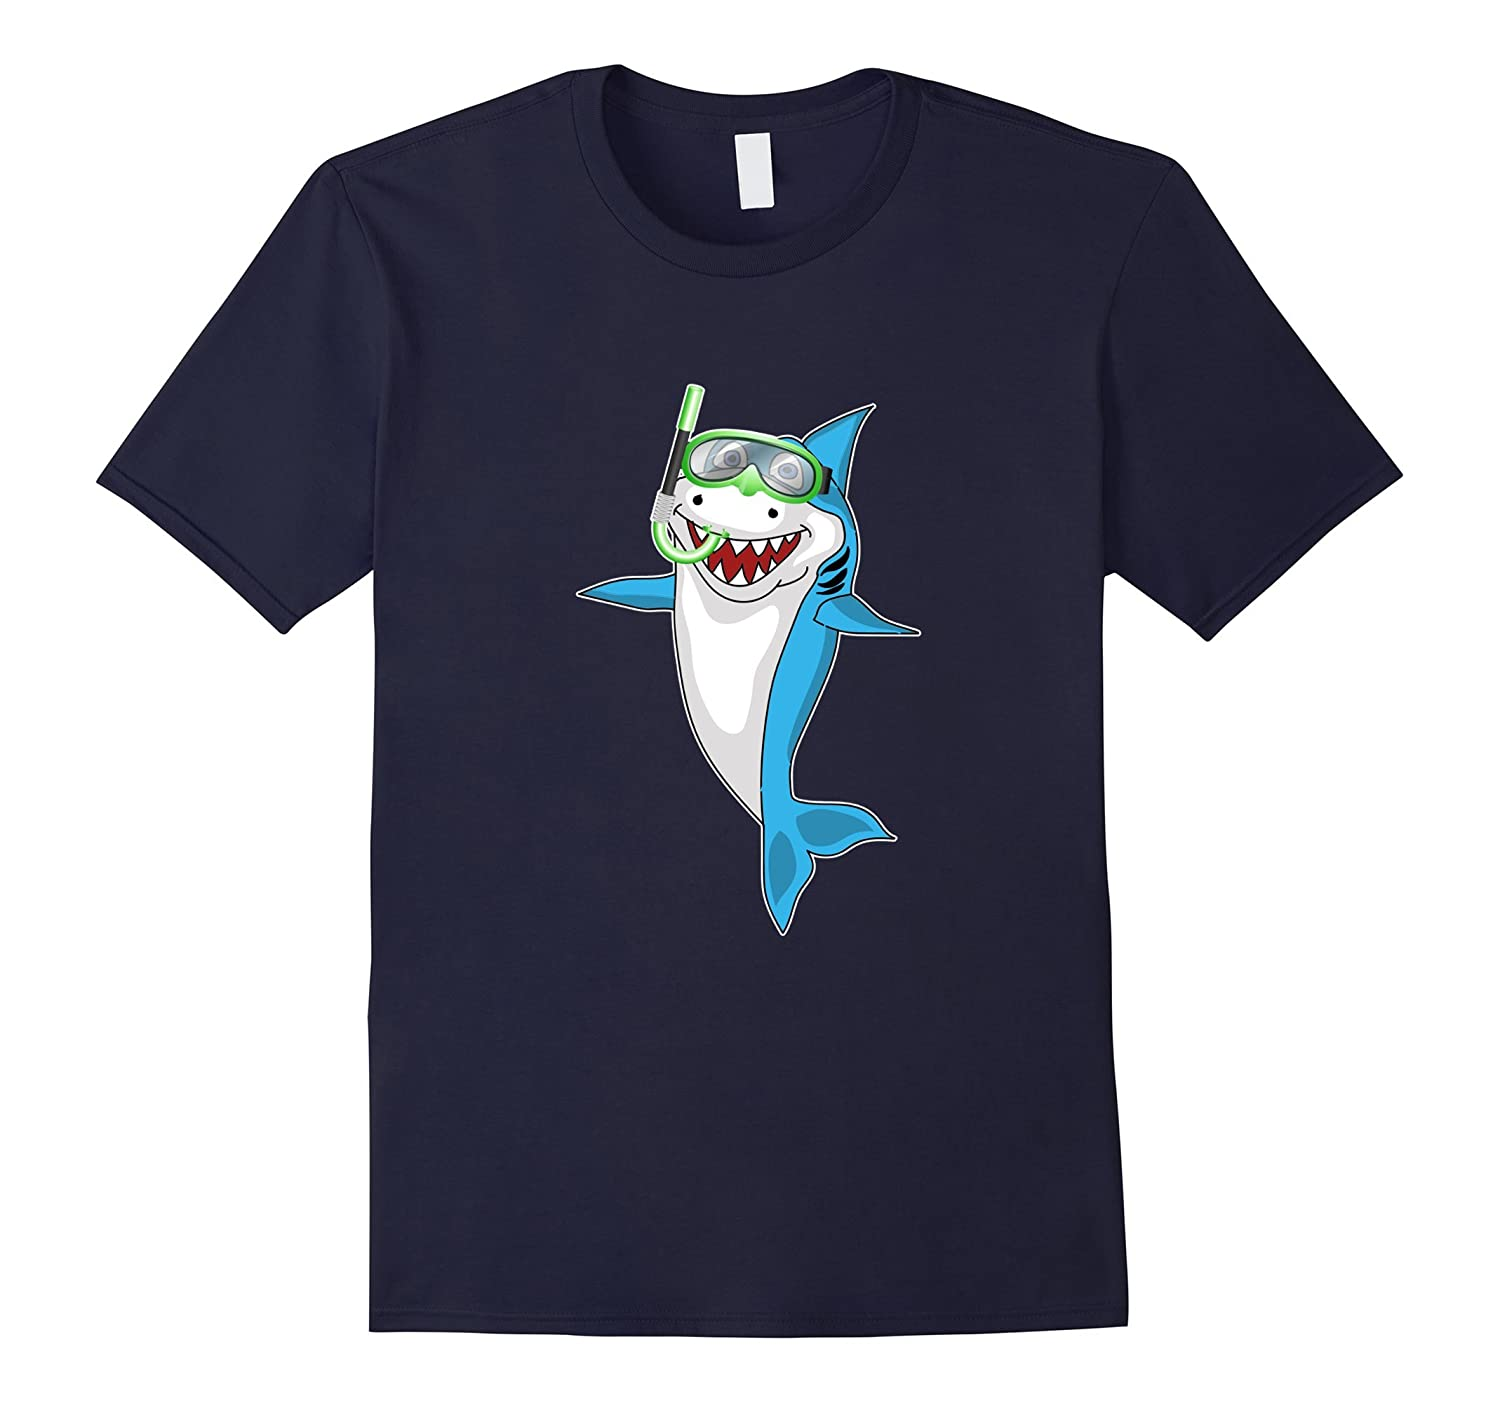 Shark Snorkel Funny T-shirt Sports Hobby Kids Vacations Tees